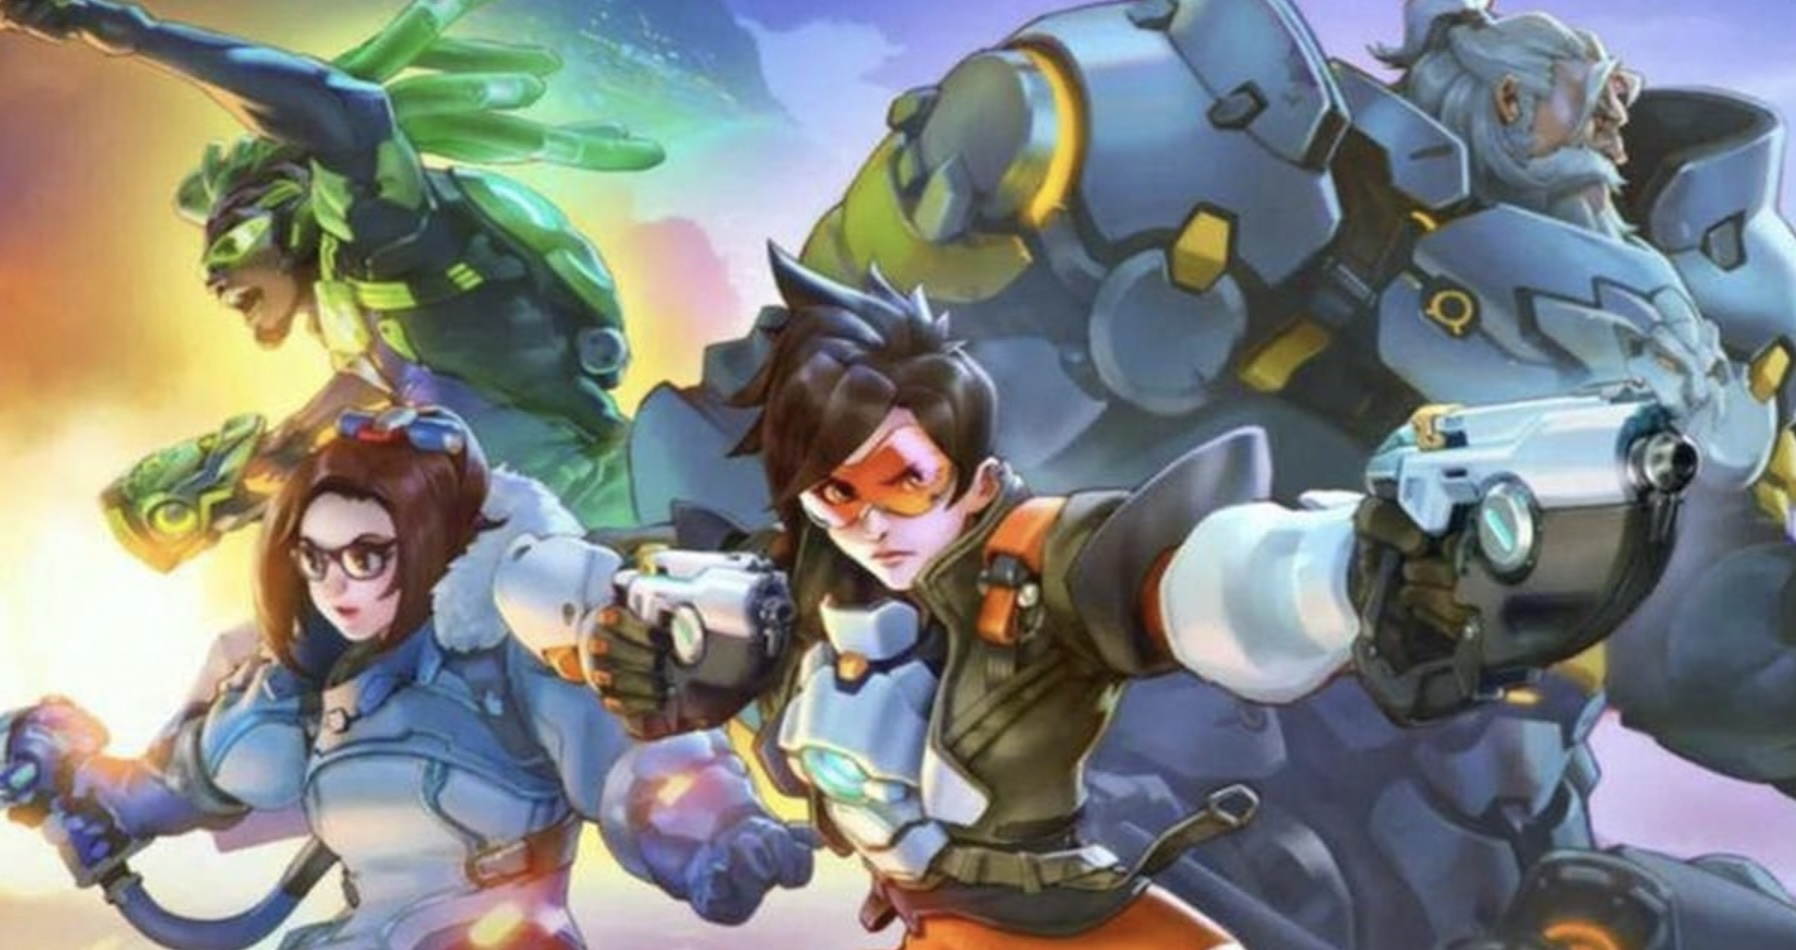 Overwatch Update 3.06 Patch Notes